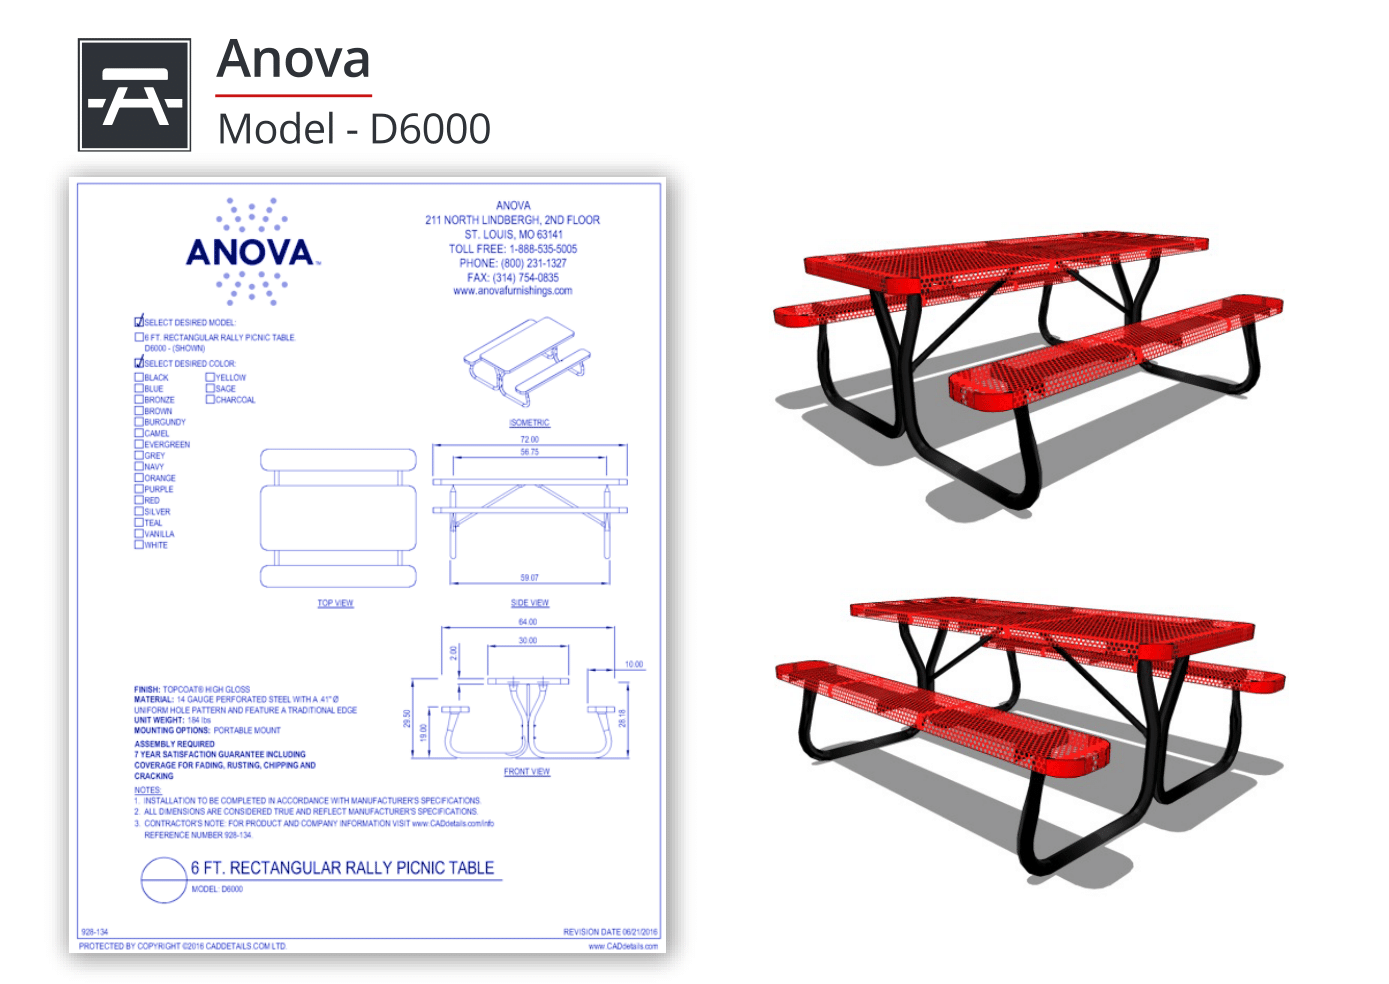 928-134 Rally Picnic Tables